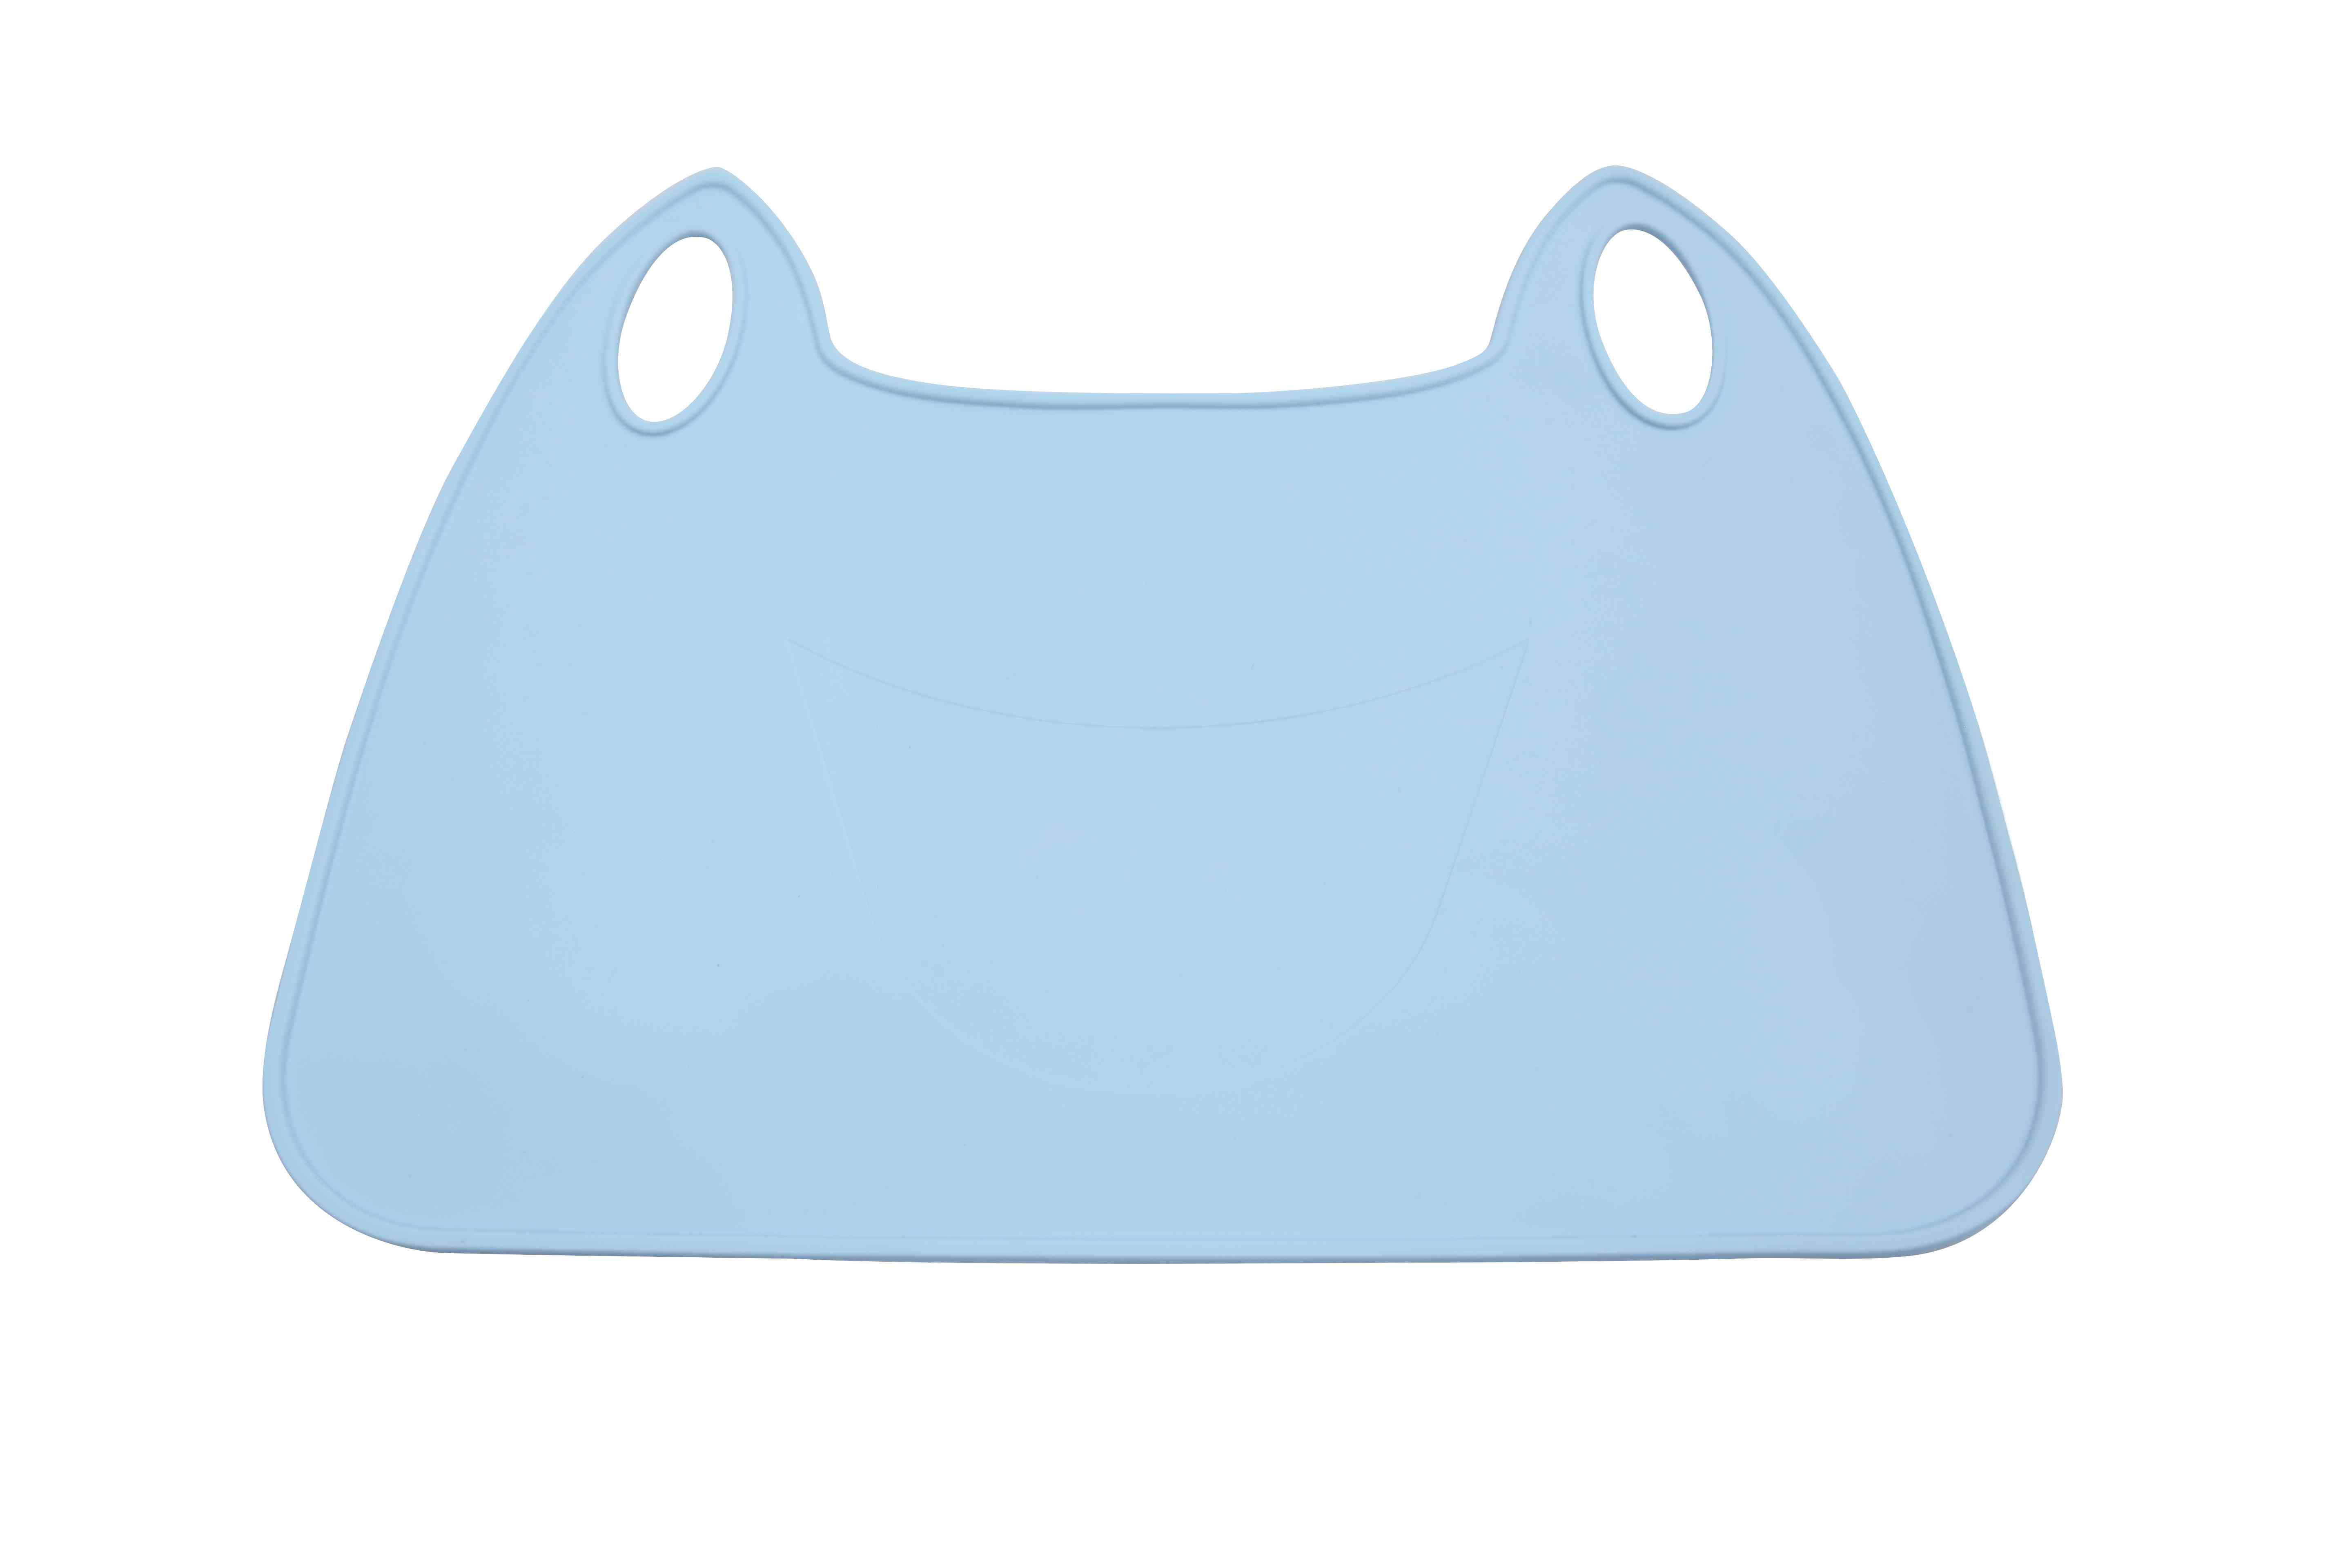 Waterproof non-slip silicone placemat for toddlers